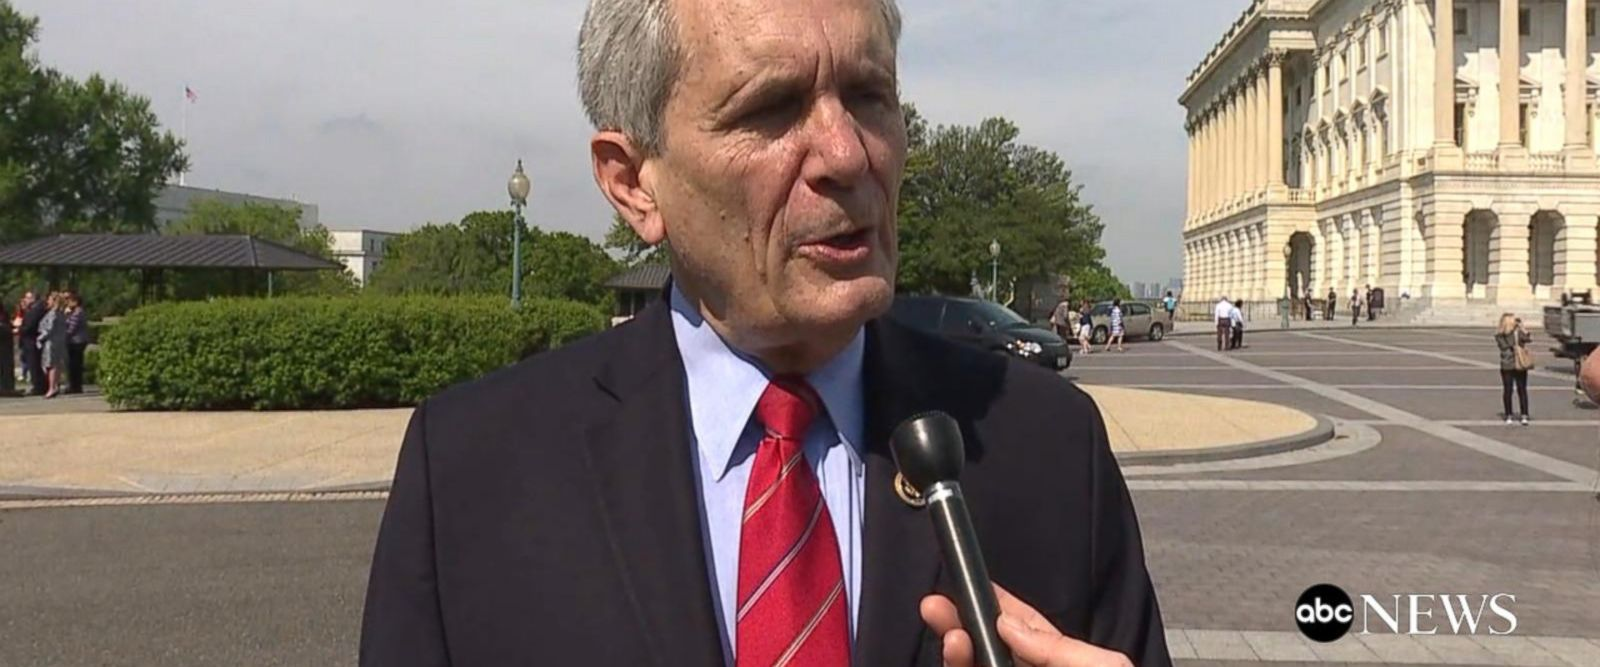 VIDEO: Top House Democrat: Tax plan 'Dripping in red ink'